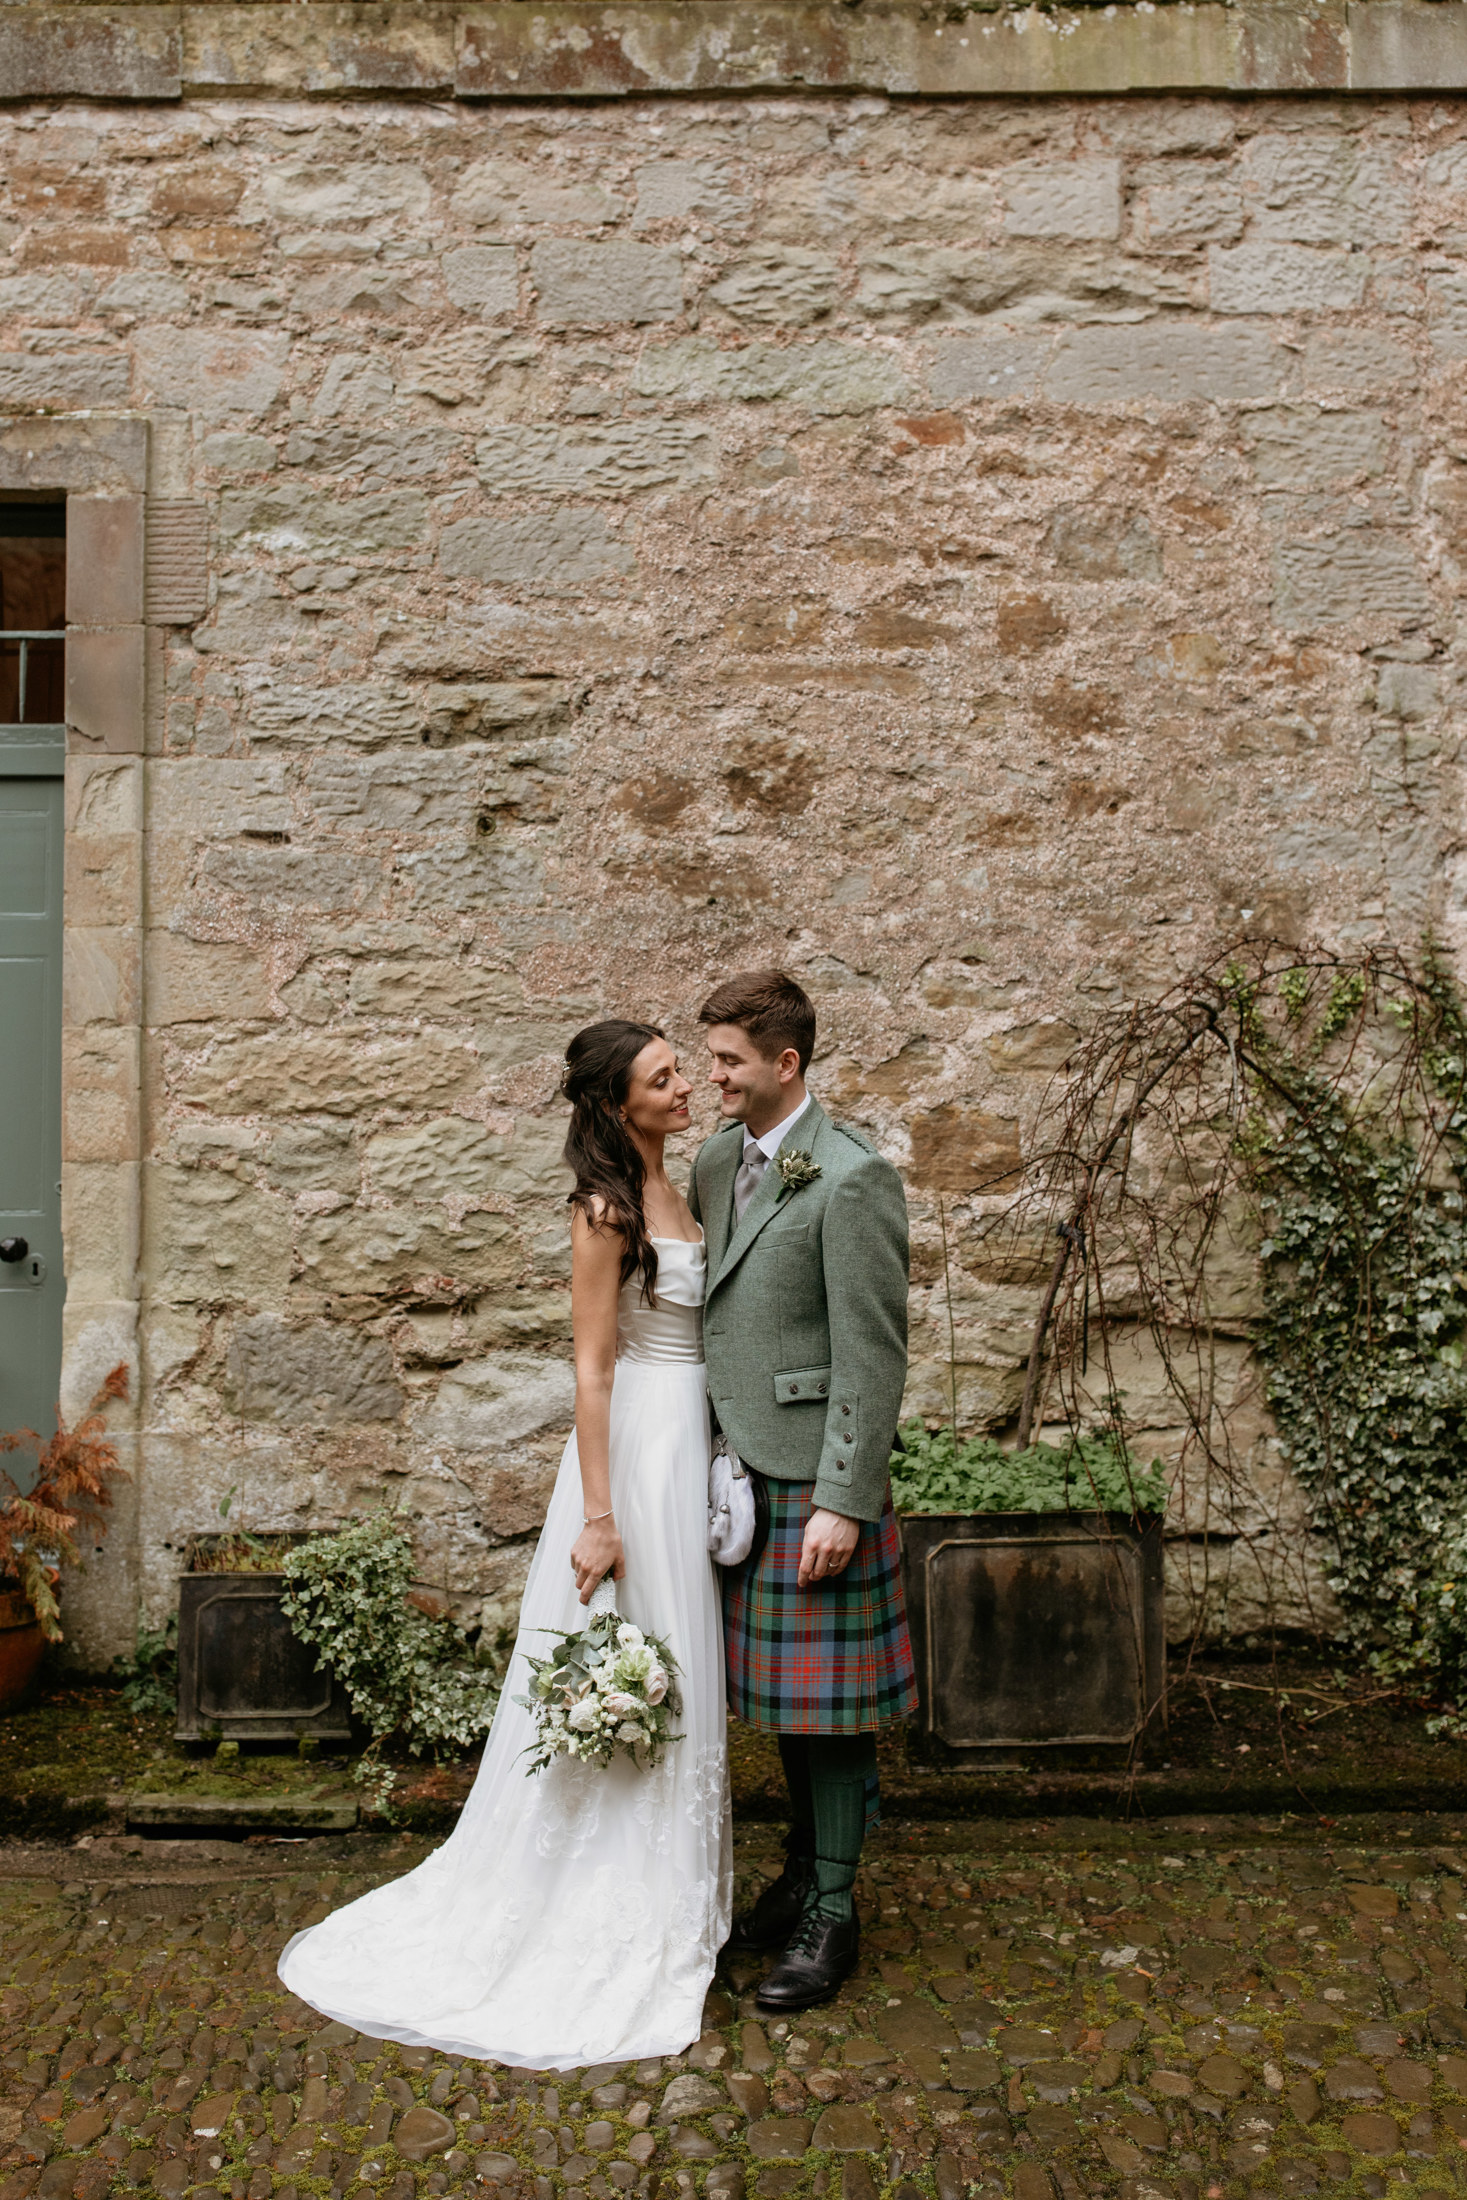 511-Brodie-Lewis-Wedderburn-Castle-Barns-Duns-Lianne-Mackay-Wedding-Photography-Edinburgh-Glasgow-Scotland.jpg